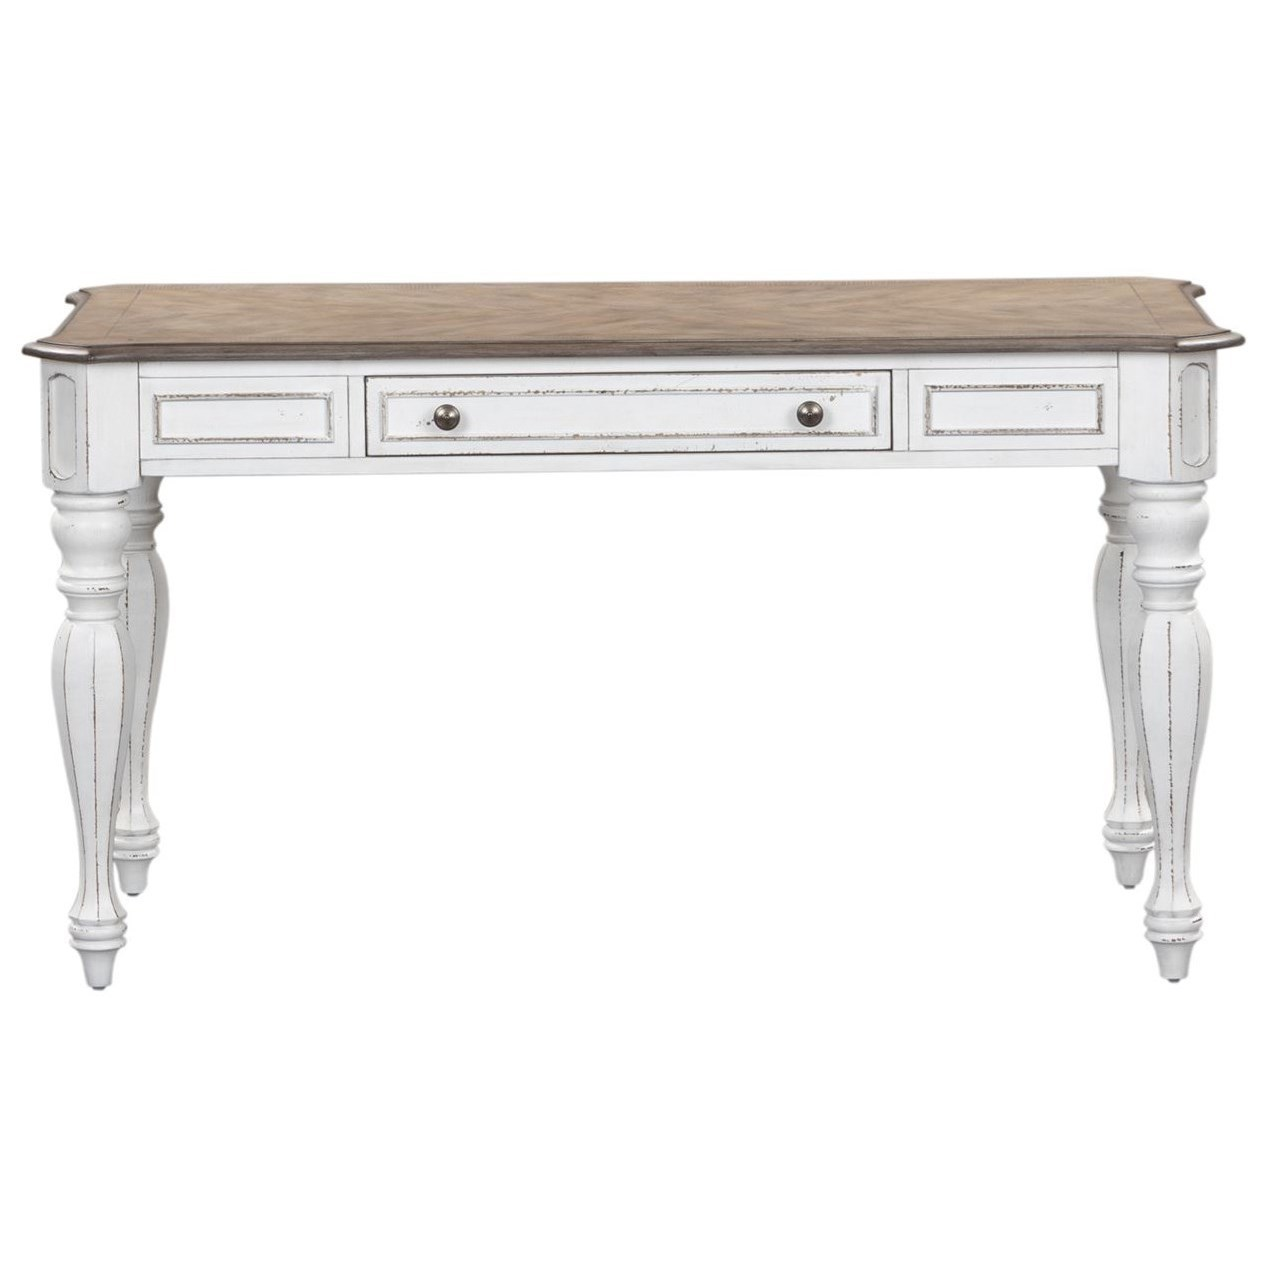 Magnolia Manor Office Relaxed Vintage Lift Top Writing Desk By Liberty Furniture At Zak S Home